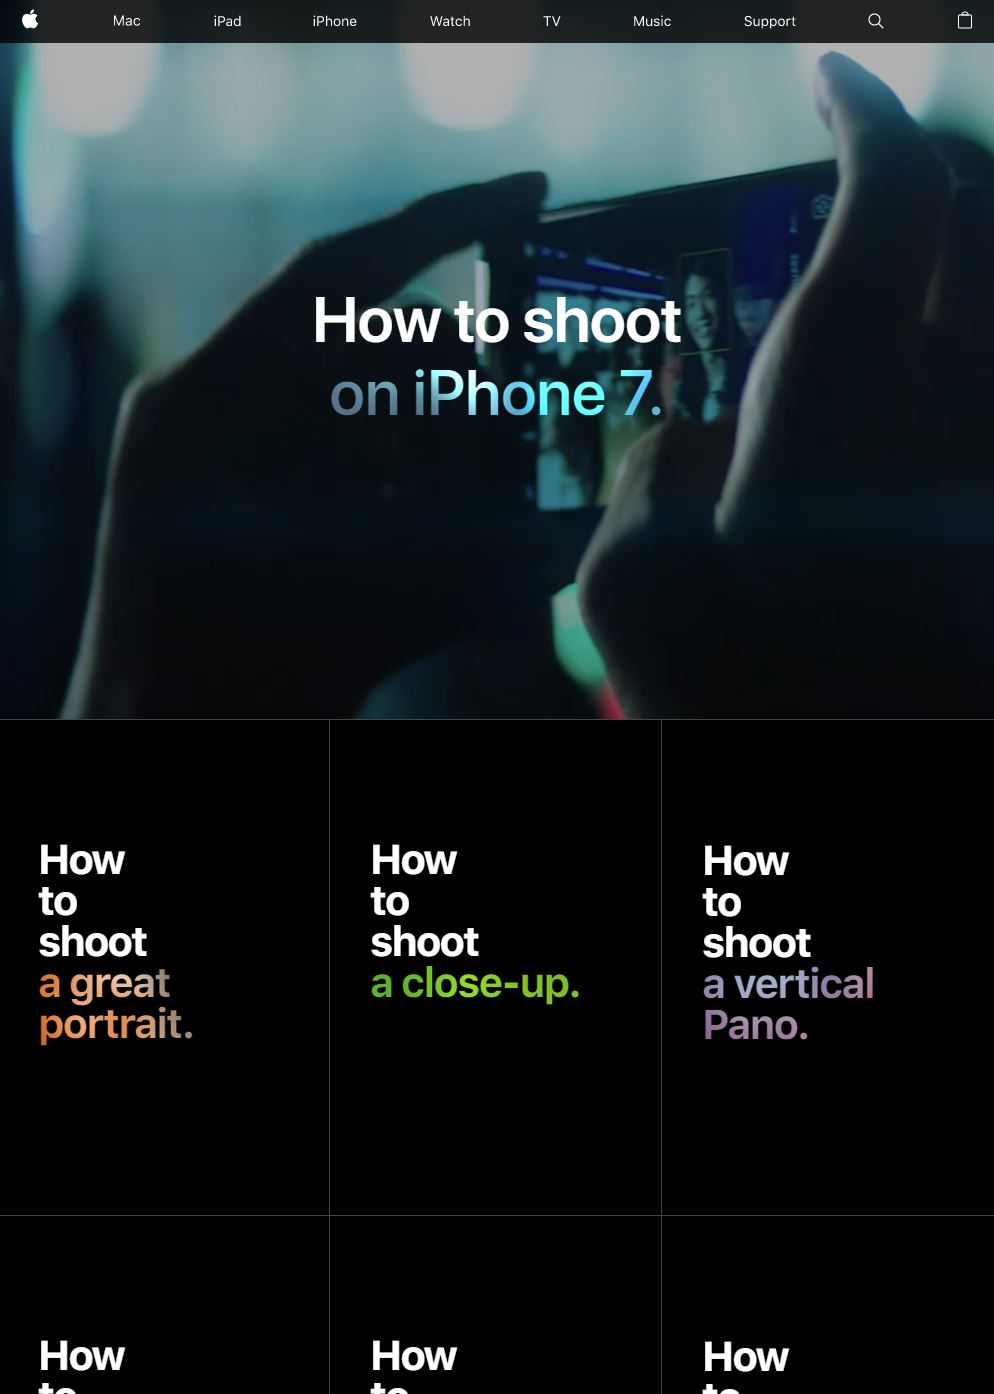 How To Shoot on iPhone 7 01